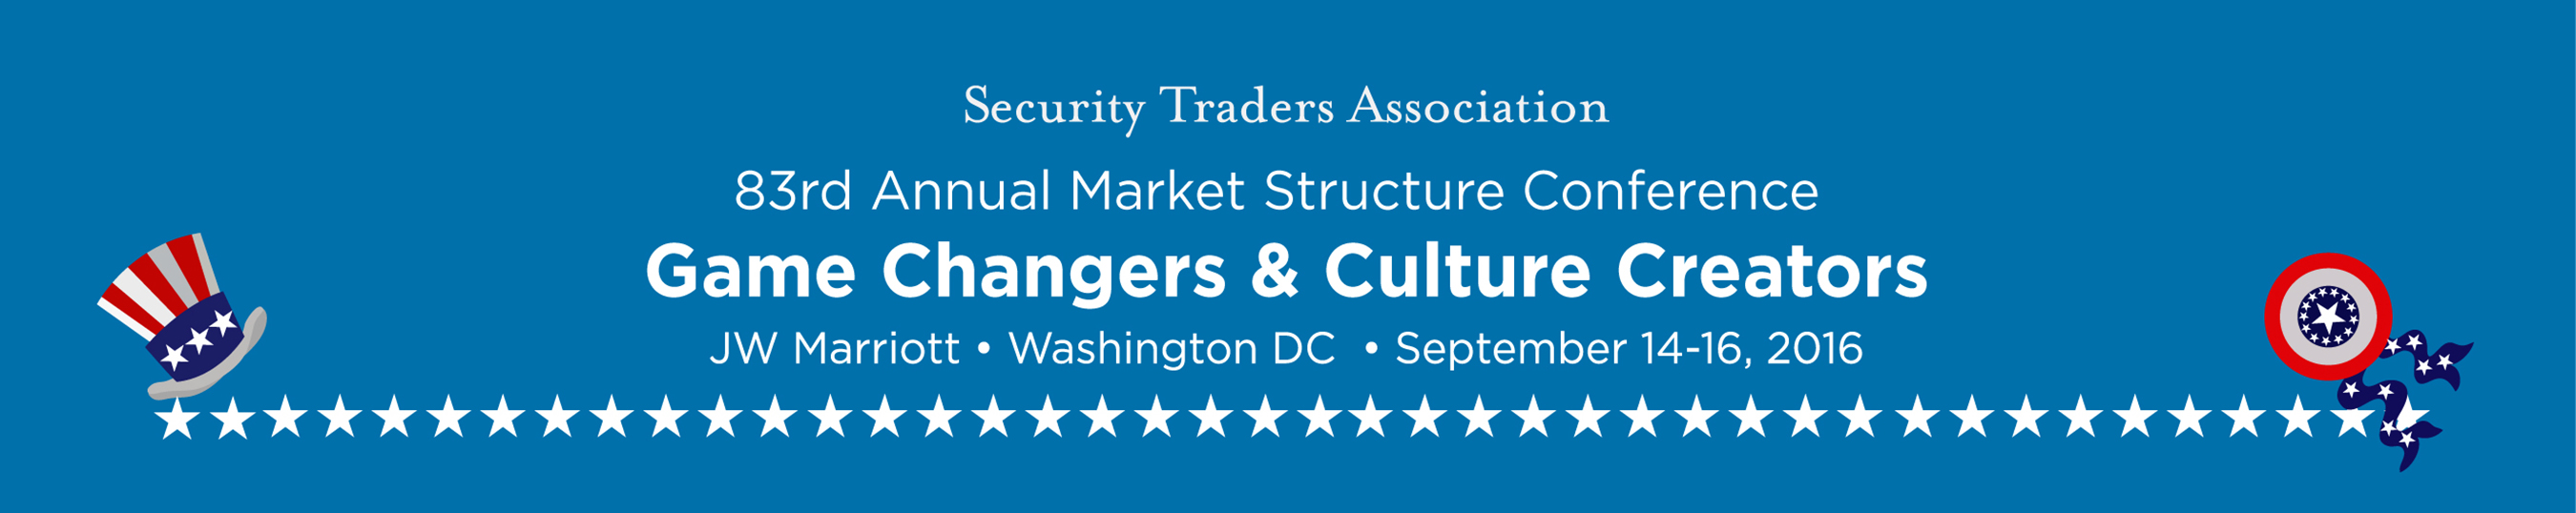 Securities Trader Cover Letter 2016 Speakers Moderators Security Traders Association